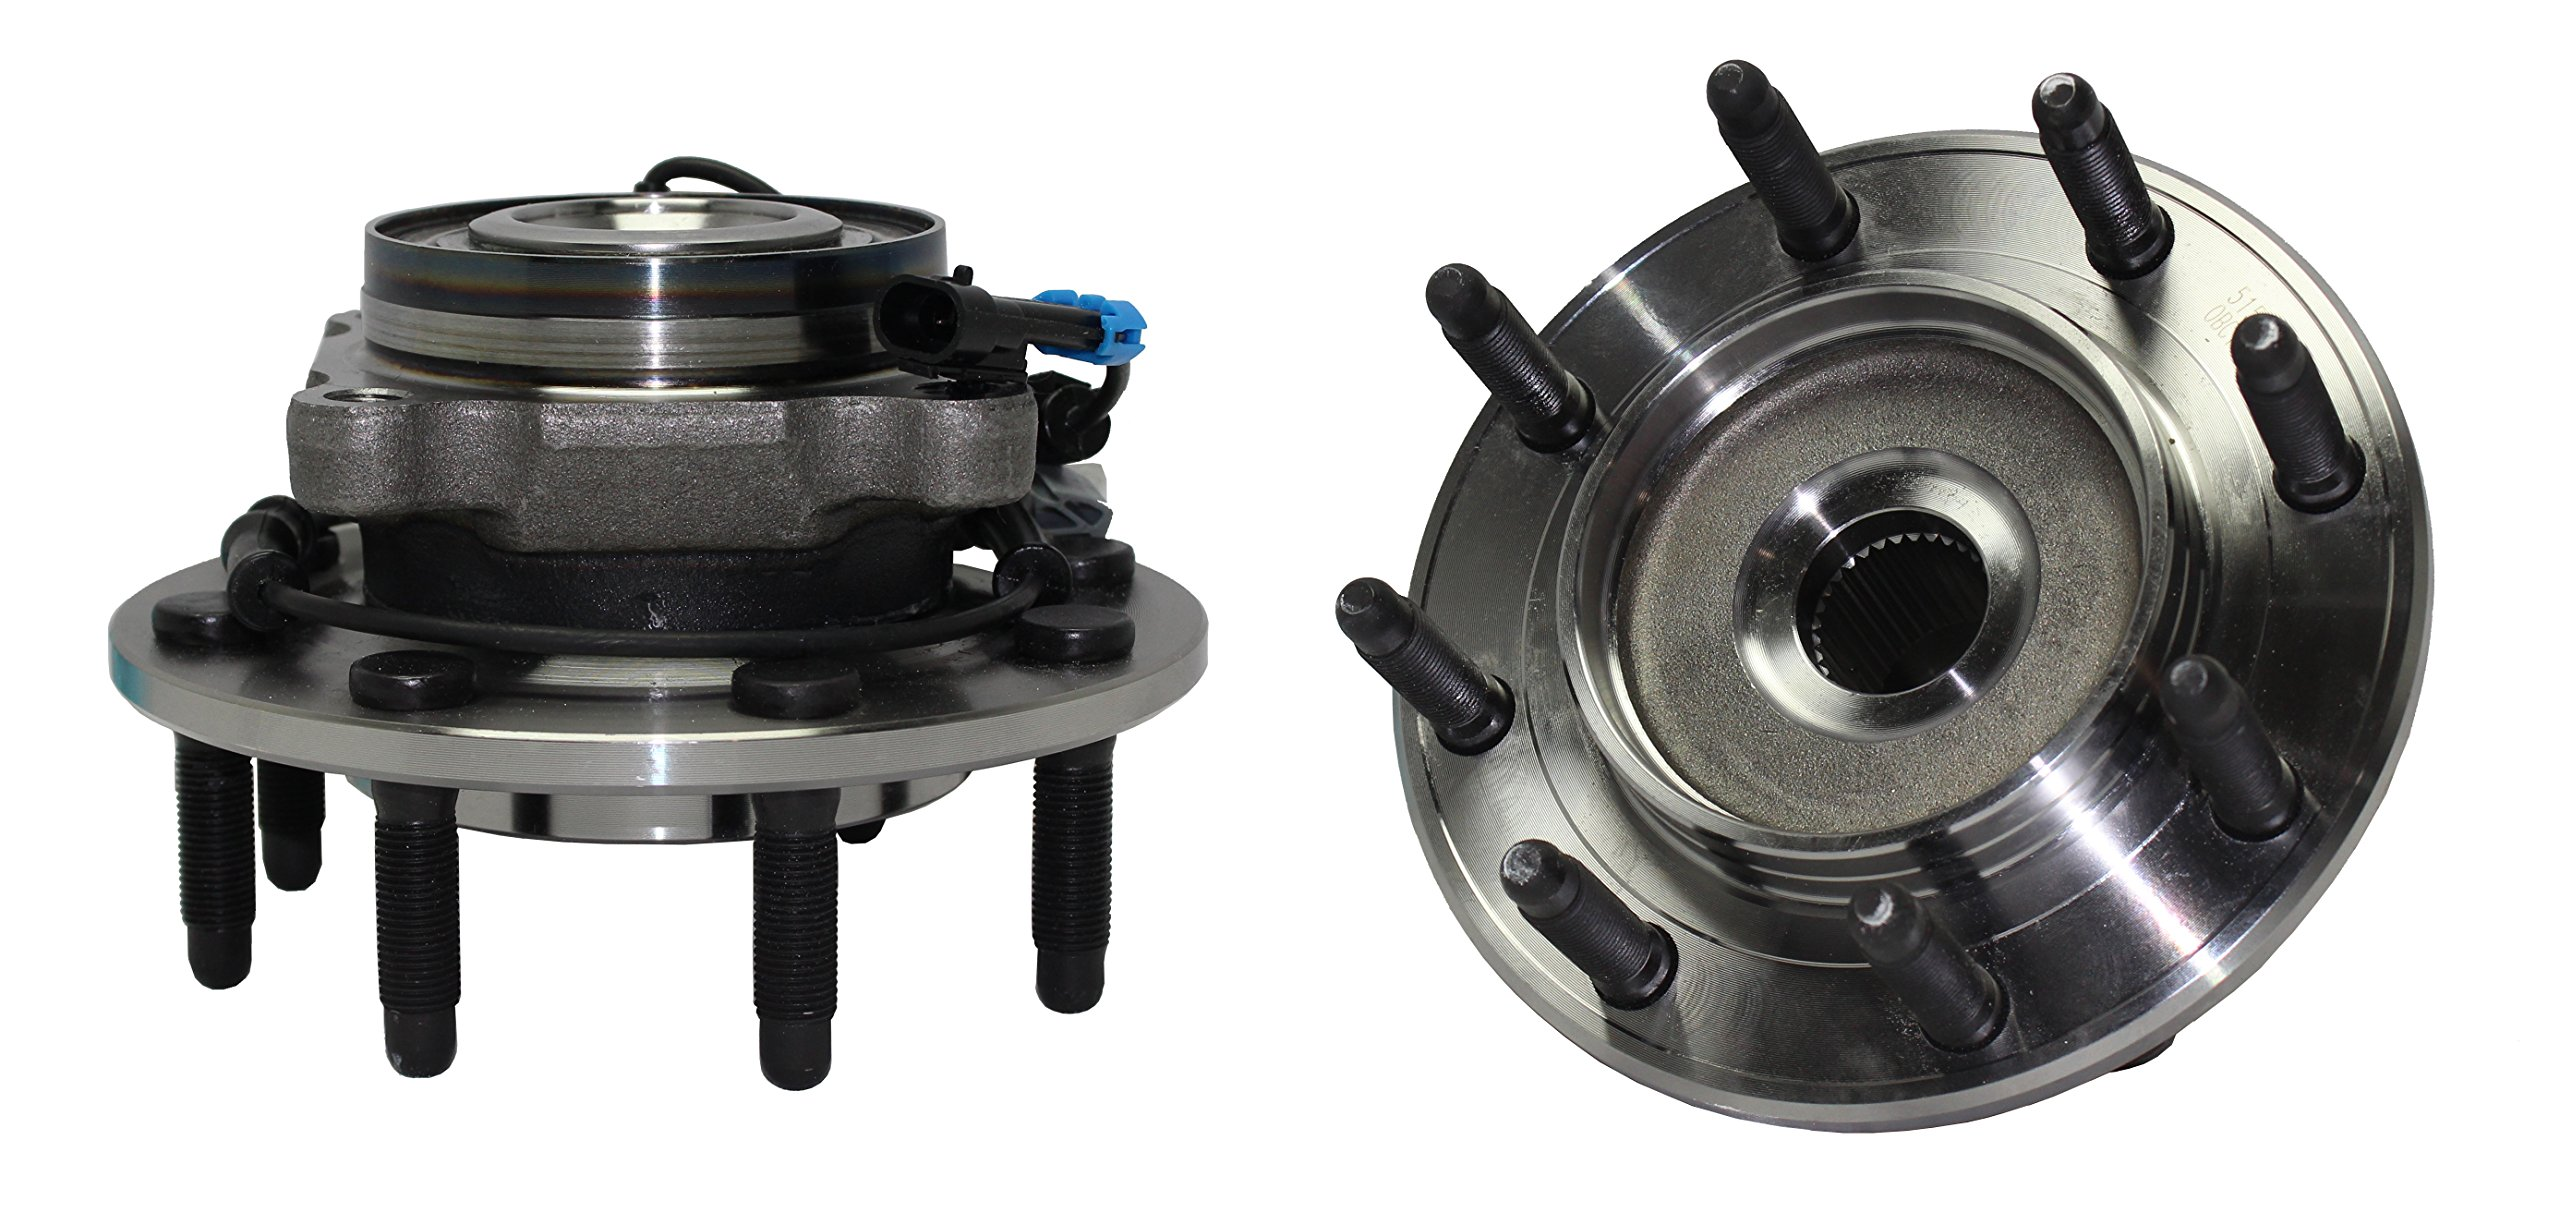 Detroit Axle - Front Wheel Hub and Bearing Assembly Pair - 8 Bolt W/ABS 515098 x 2 Not For Classic Body - 2007-2010 Silverado/Sierra 2500HD - [07-09 Silverado/Sierra 3500]